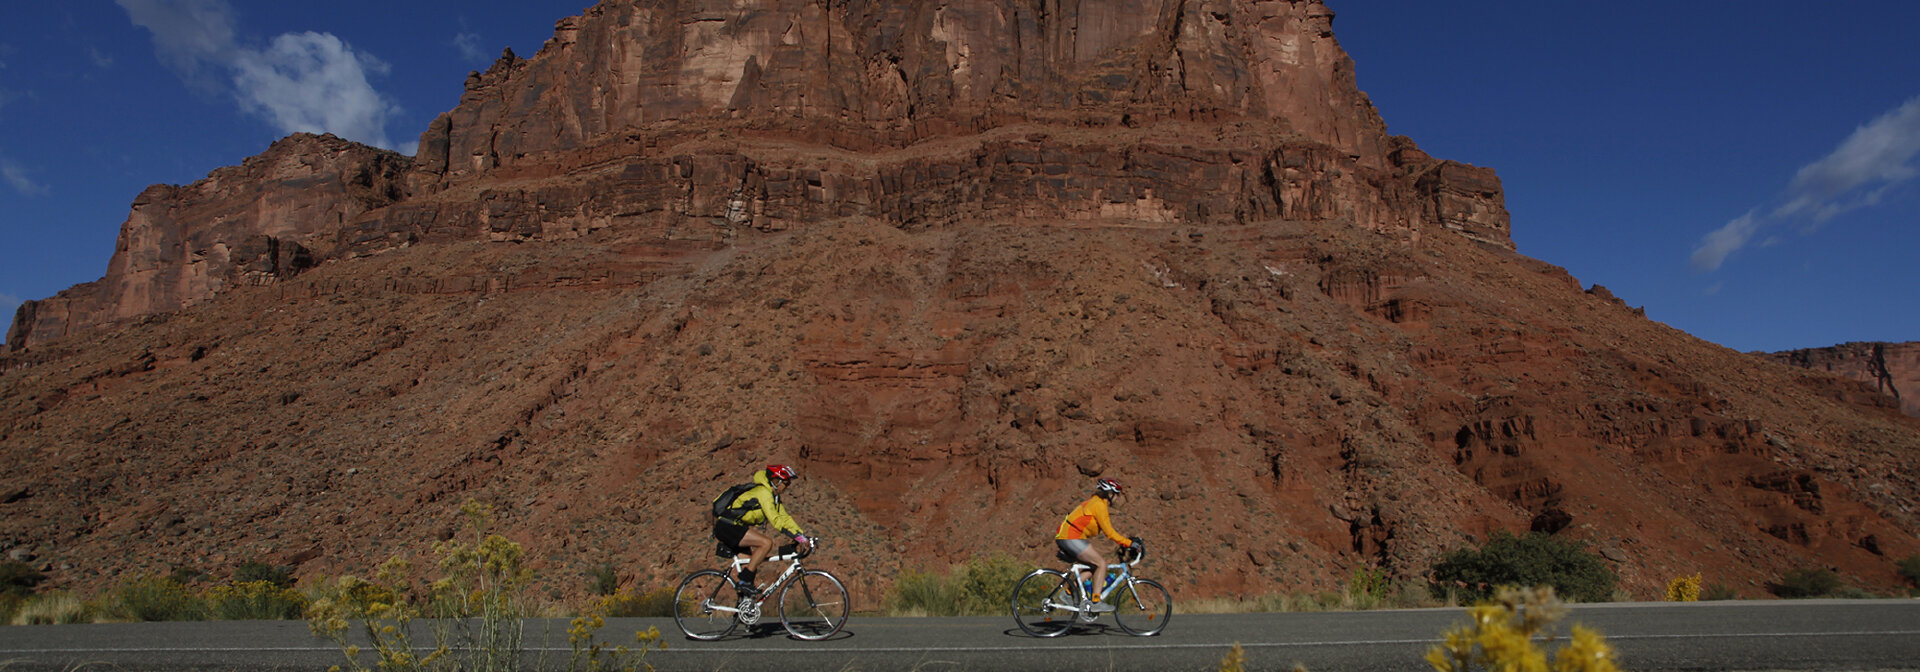 Utah: Moab Arches and Canyonlands